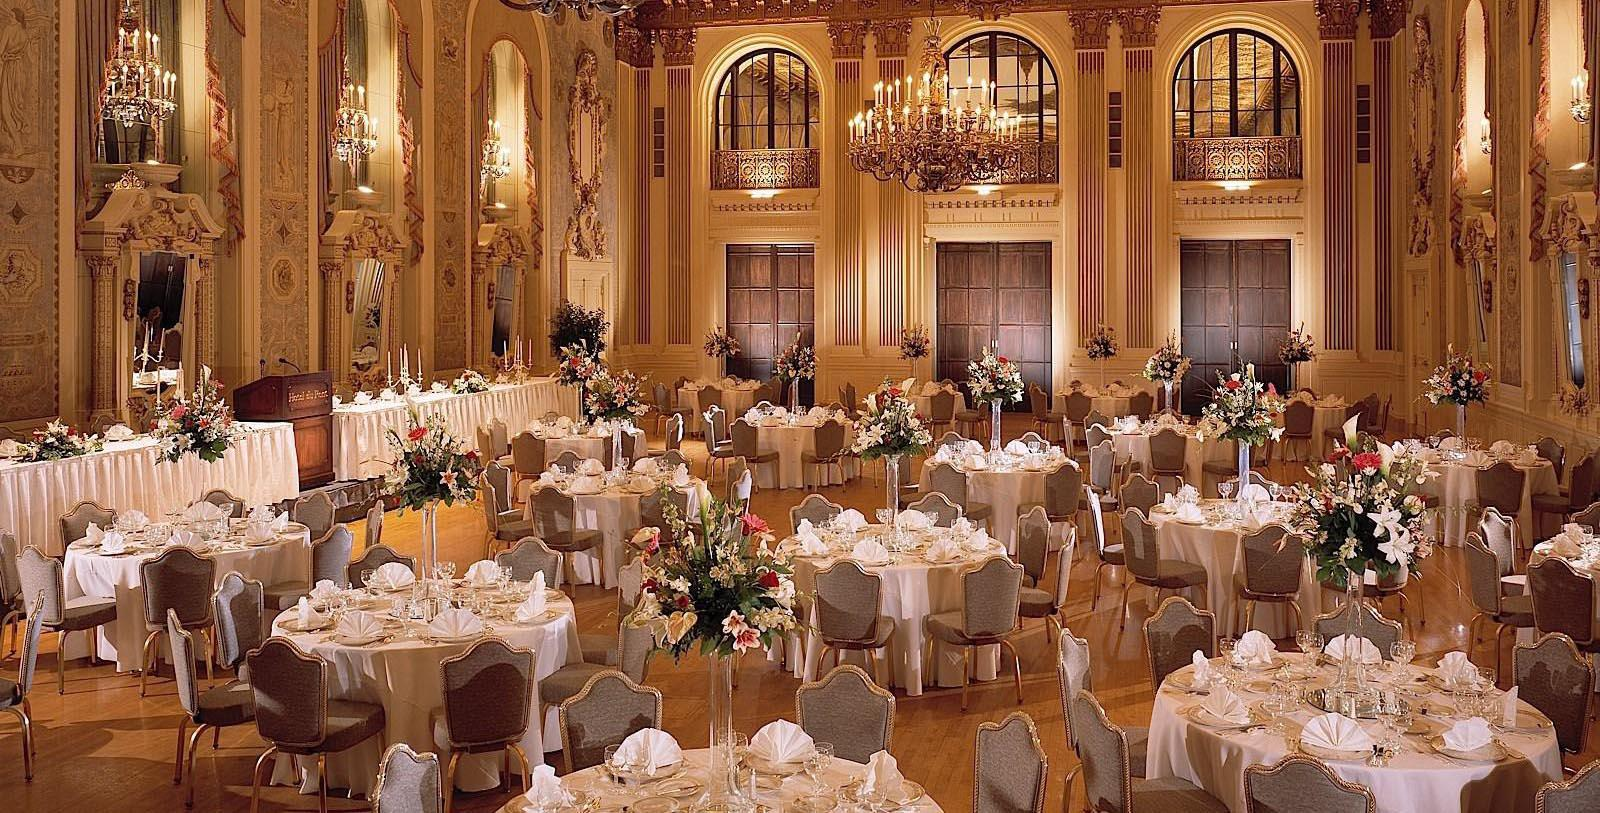 Image of banquet hall wedding reception HOTEL DU PONT, 1913, Member of Historic Hotels of America, in Wilmington, Delaware, Experience